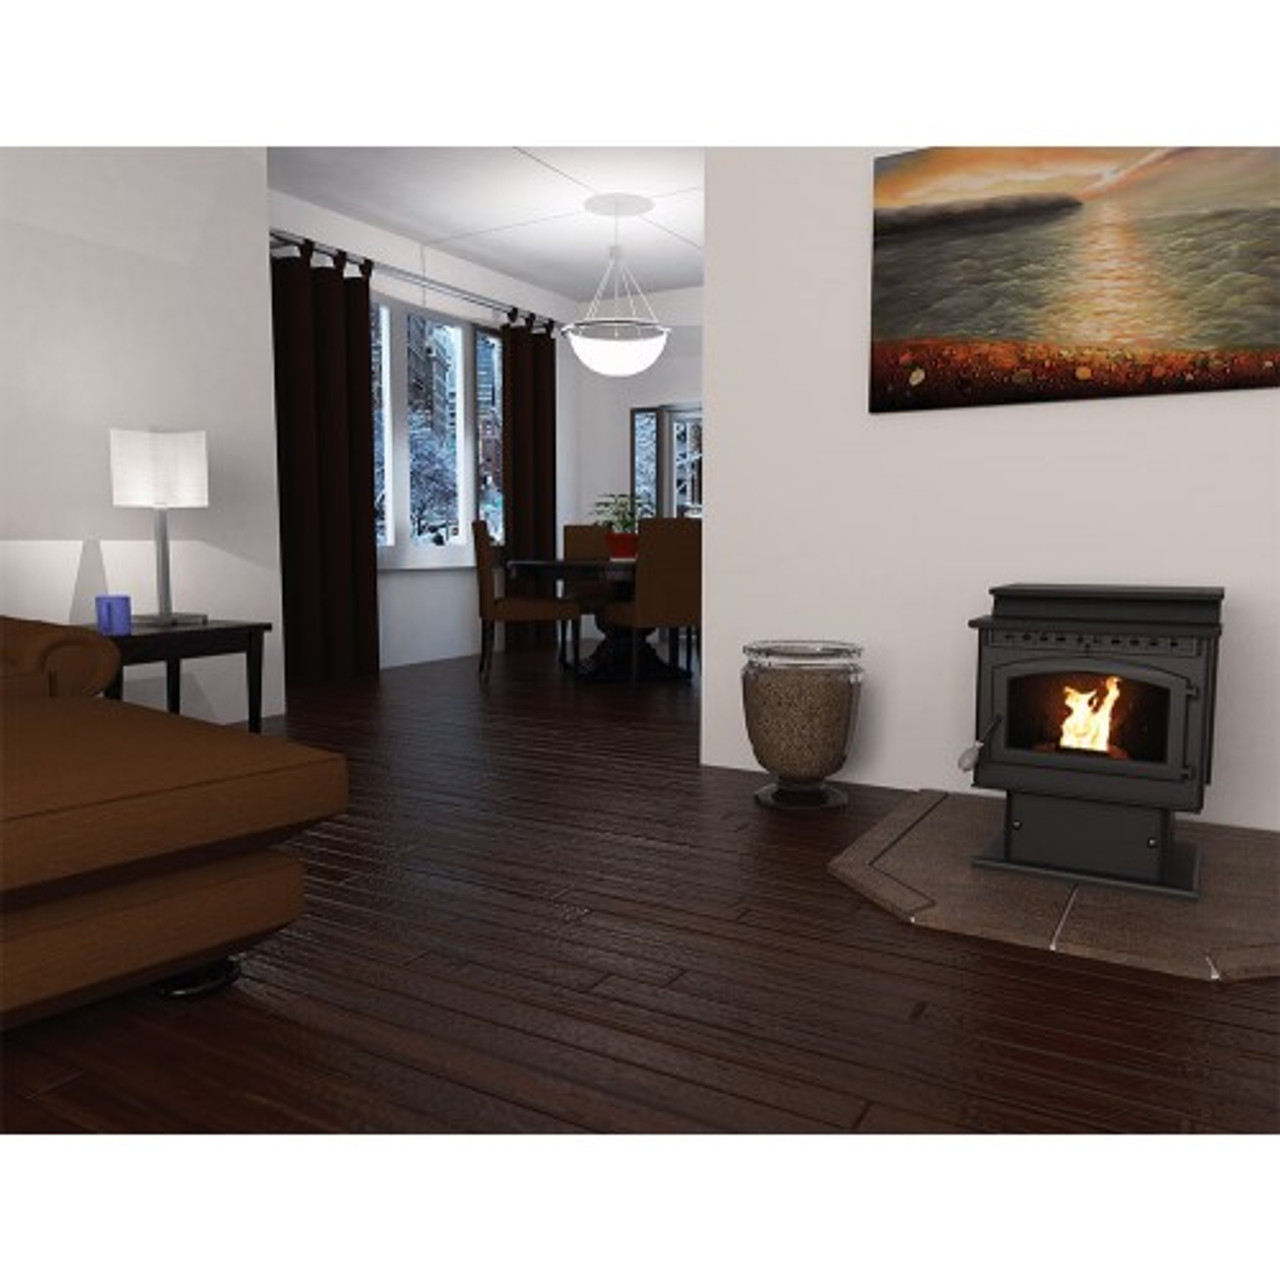 Breckwell Sonora SP23 Pellet Stove